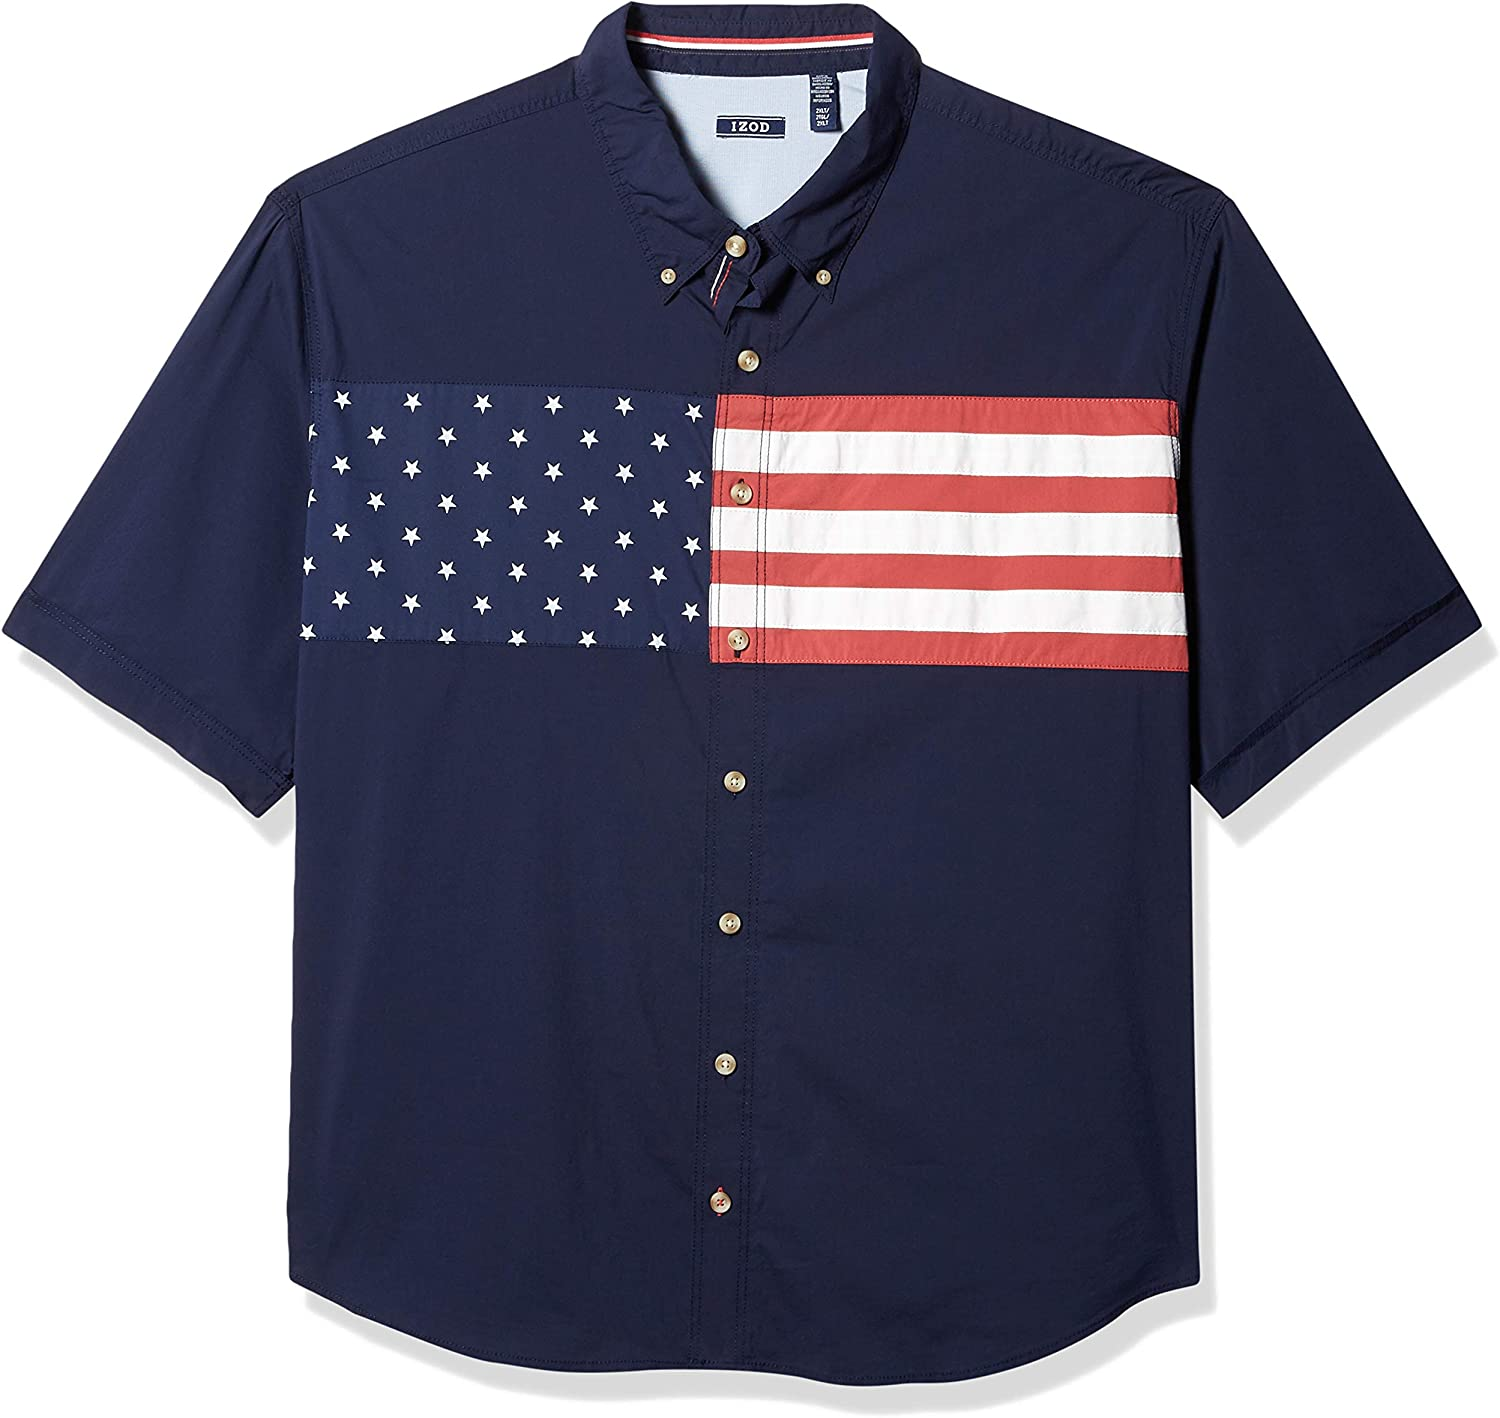 IZOD Men's Big and Tall Outpost Short Sleeve Button Down Americana Shirt